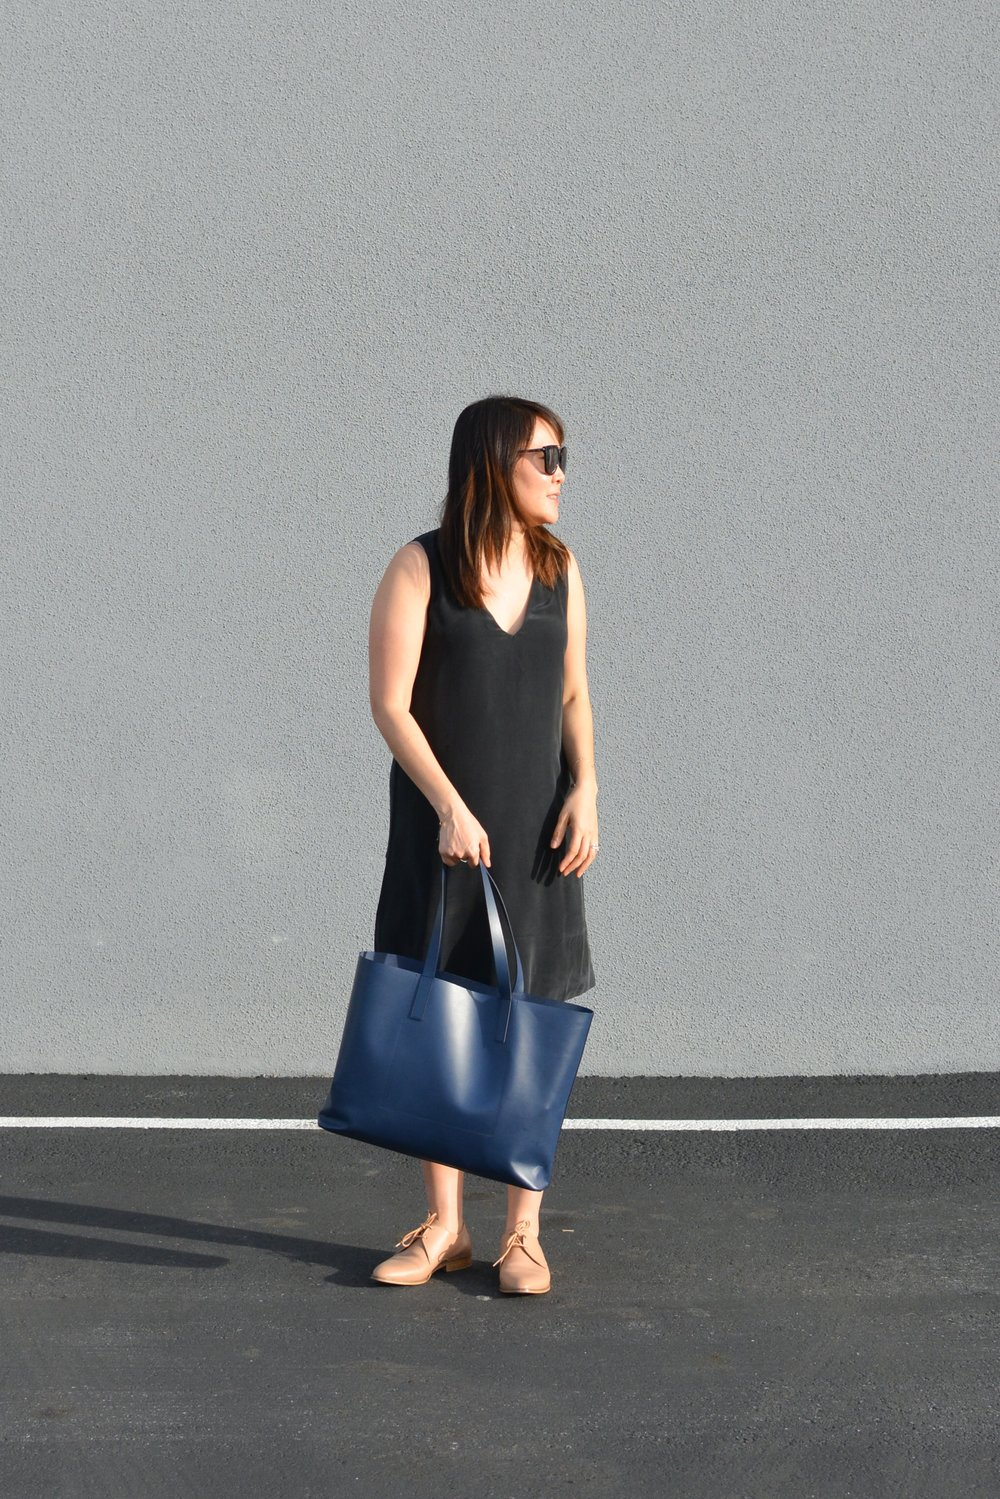 Everlane Review The Day Market Tote (2 of 2)-min.jpg